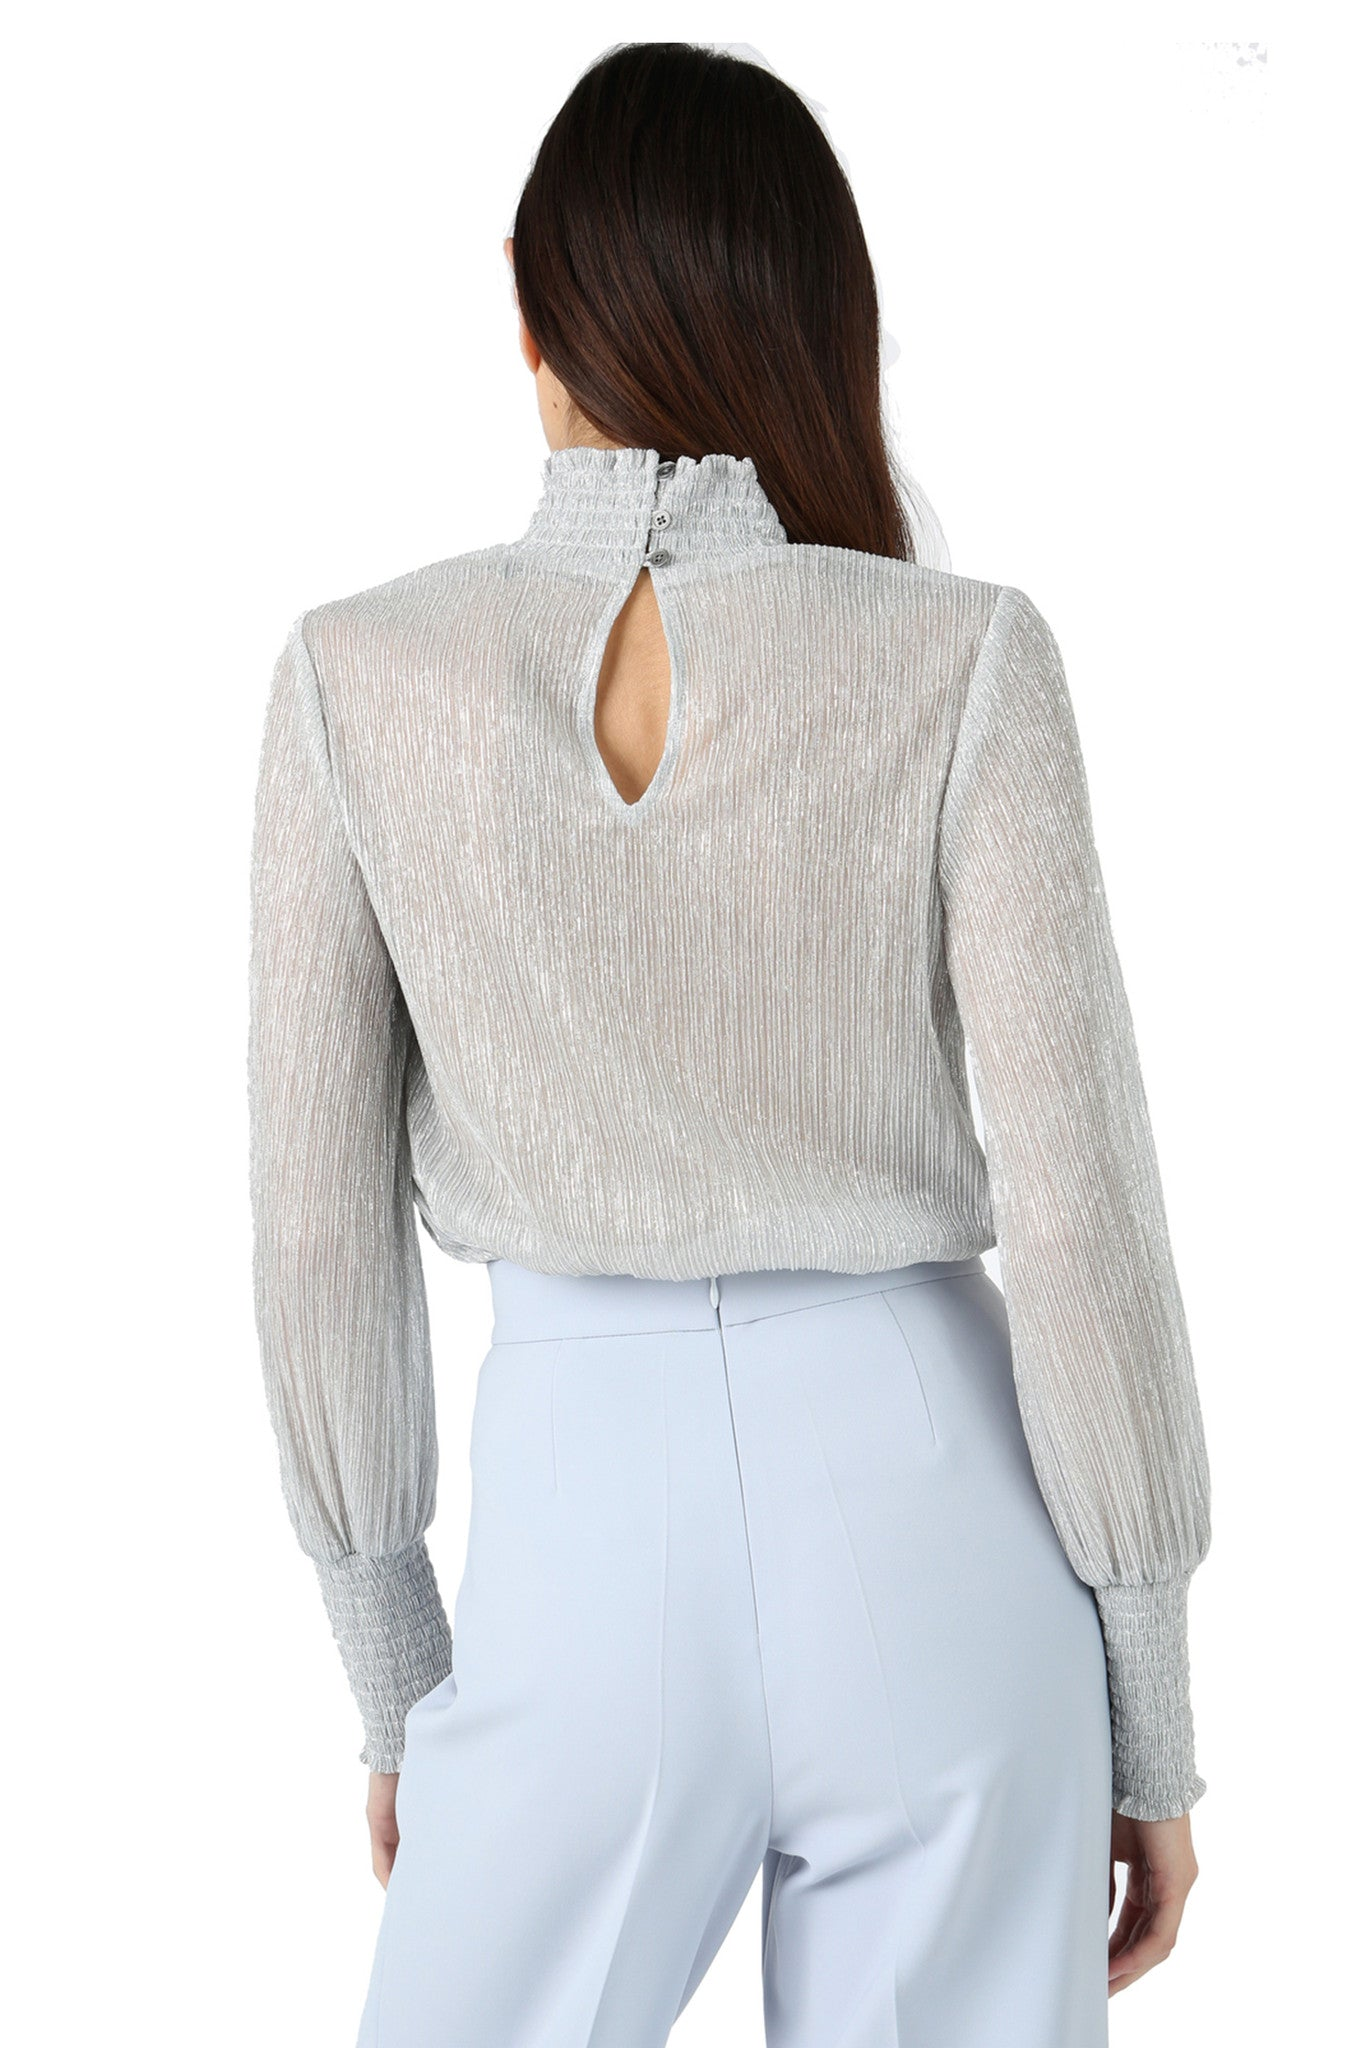 Jay Godfrey Metallic Turtleneck Blouse - Back View